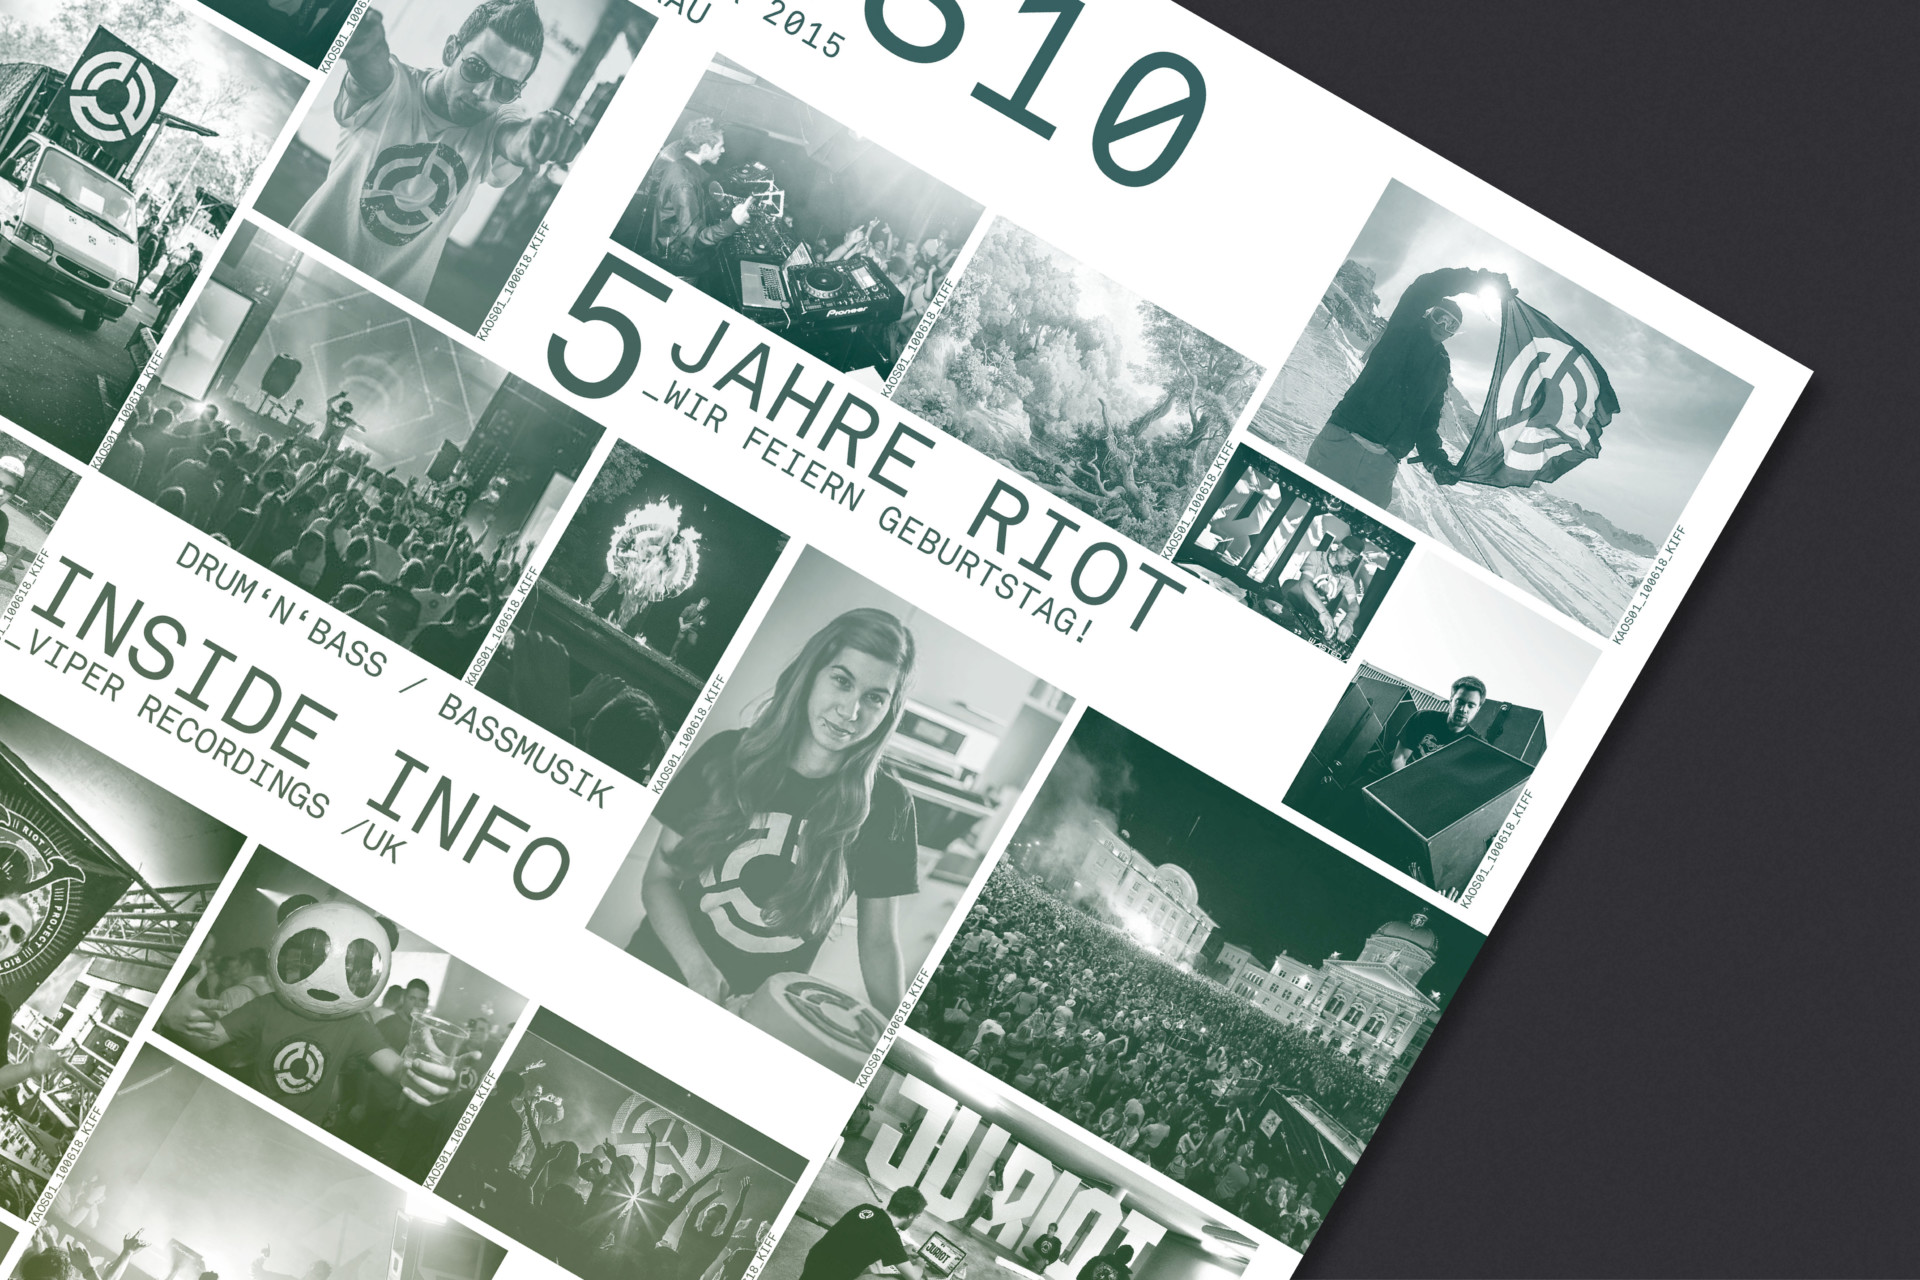 Steiner Grafik Corporate Design: Project Riot